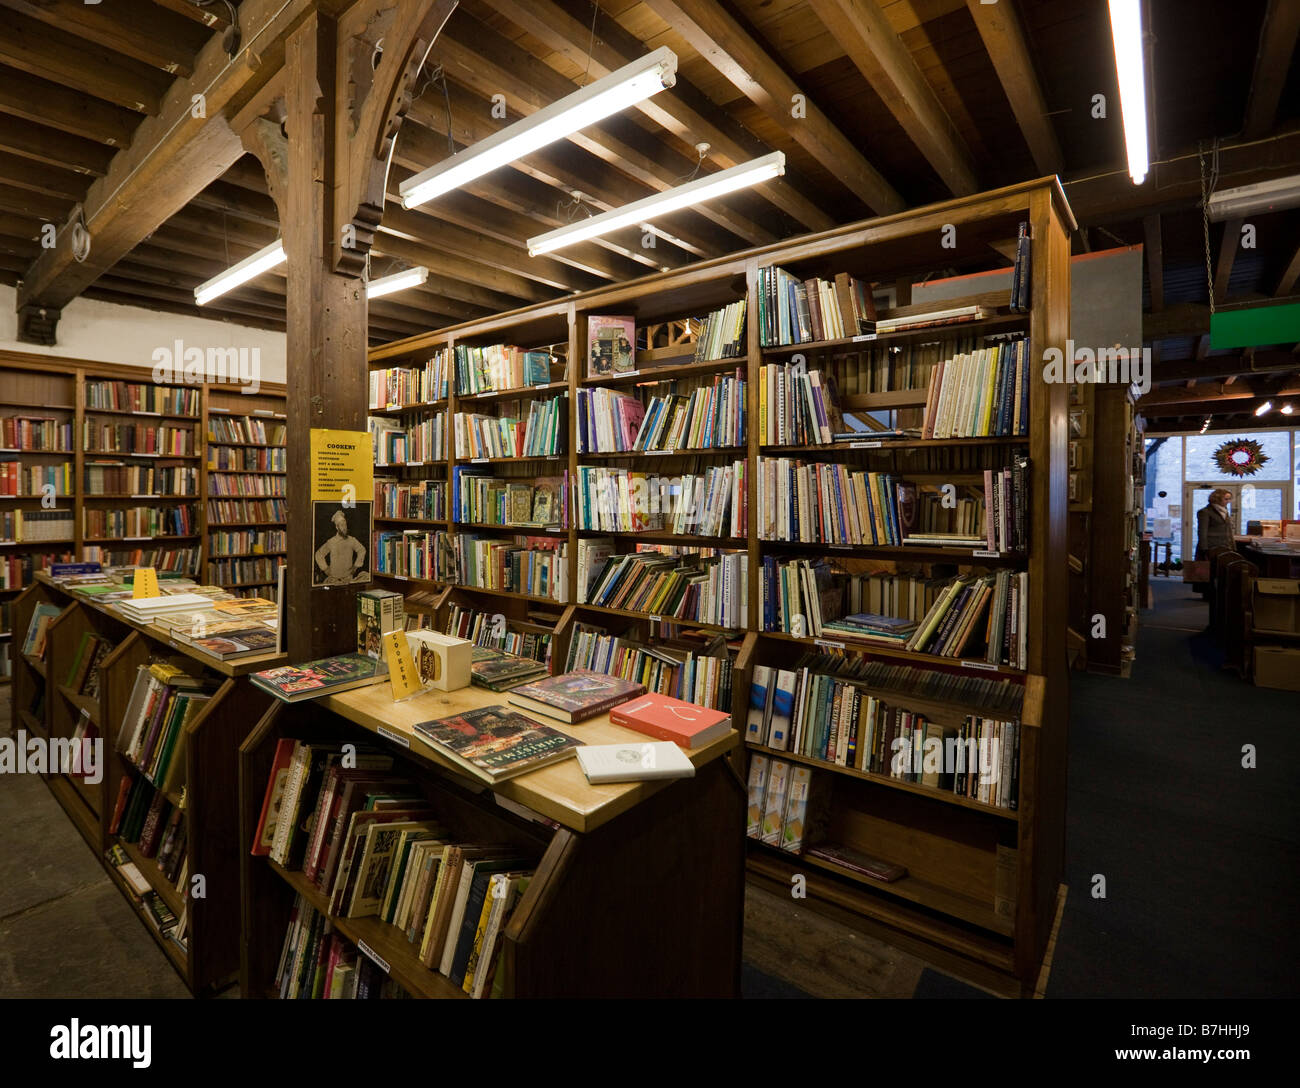 Hay on Wye in Welsh borders secondhand book and antique centre of interest Booths book store interior - Stock Image